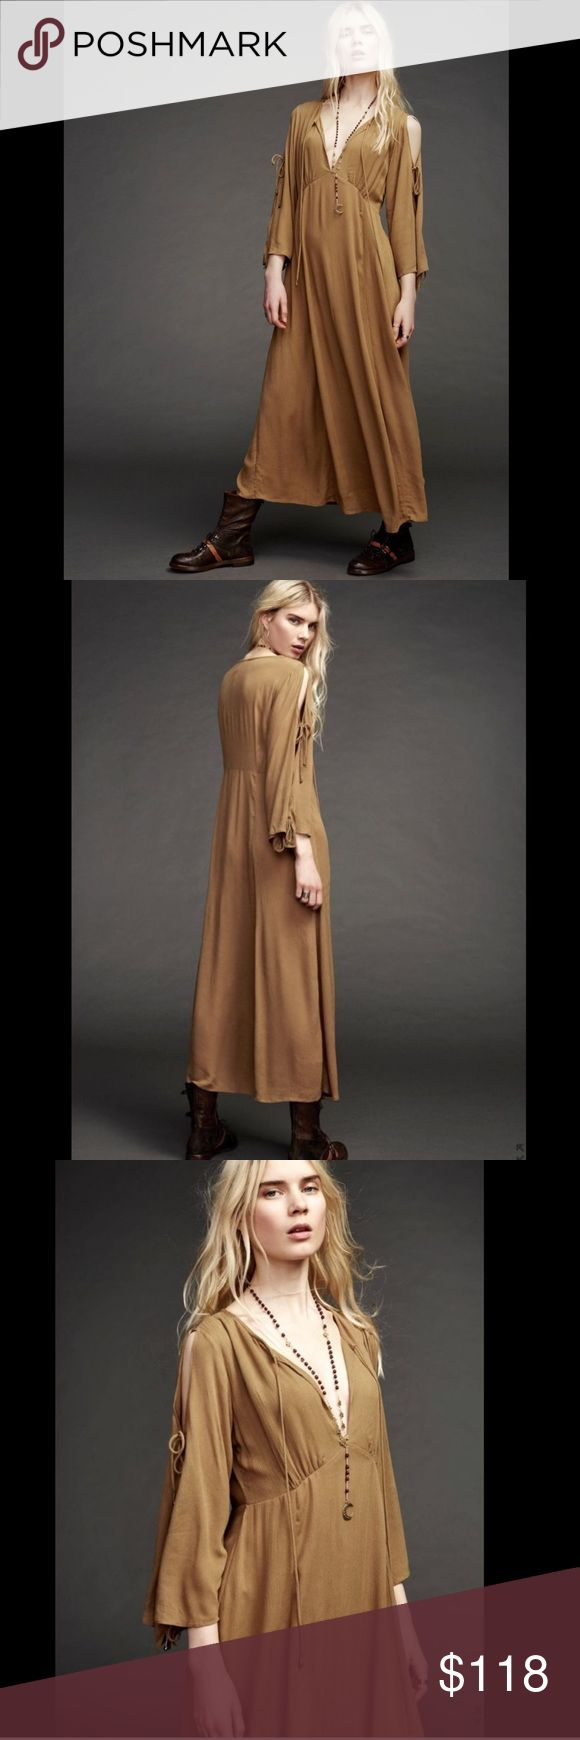 """Free People Endless Summer gold brown Maxi Dress S Free People Endless Summer gold brown Babydoll Cold Shoulder Maxi Dress deep V with tie, wide 3/4 bell sleeves with cold shoulder   swingy skirt, unlined, with bell tassel ends New Without Tags  *  Size:  Small  *there is a line through the tag to prevent store return * depending on your height it will be a Midi or Maxi  100% gauzy rayon  37"""" around bust 32"""" around waist 52"""" long Free People Dresses Maxi"""